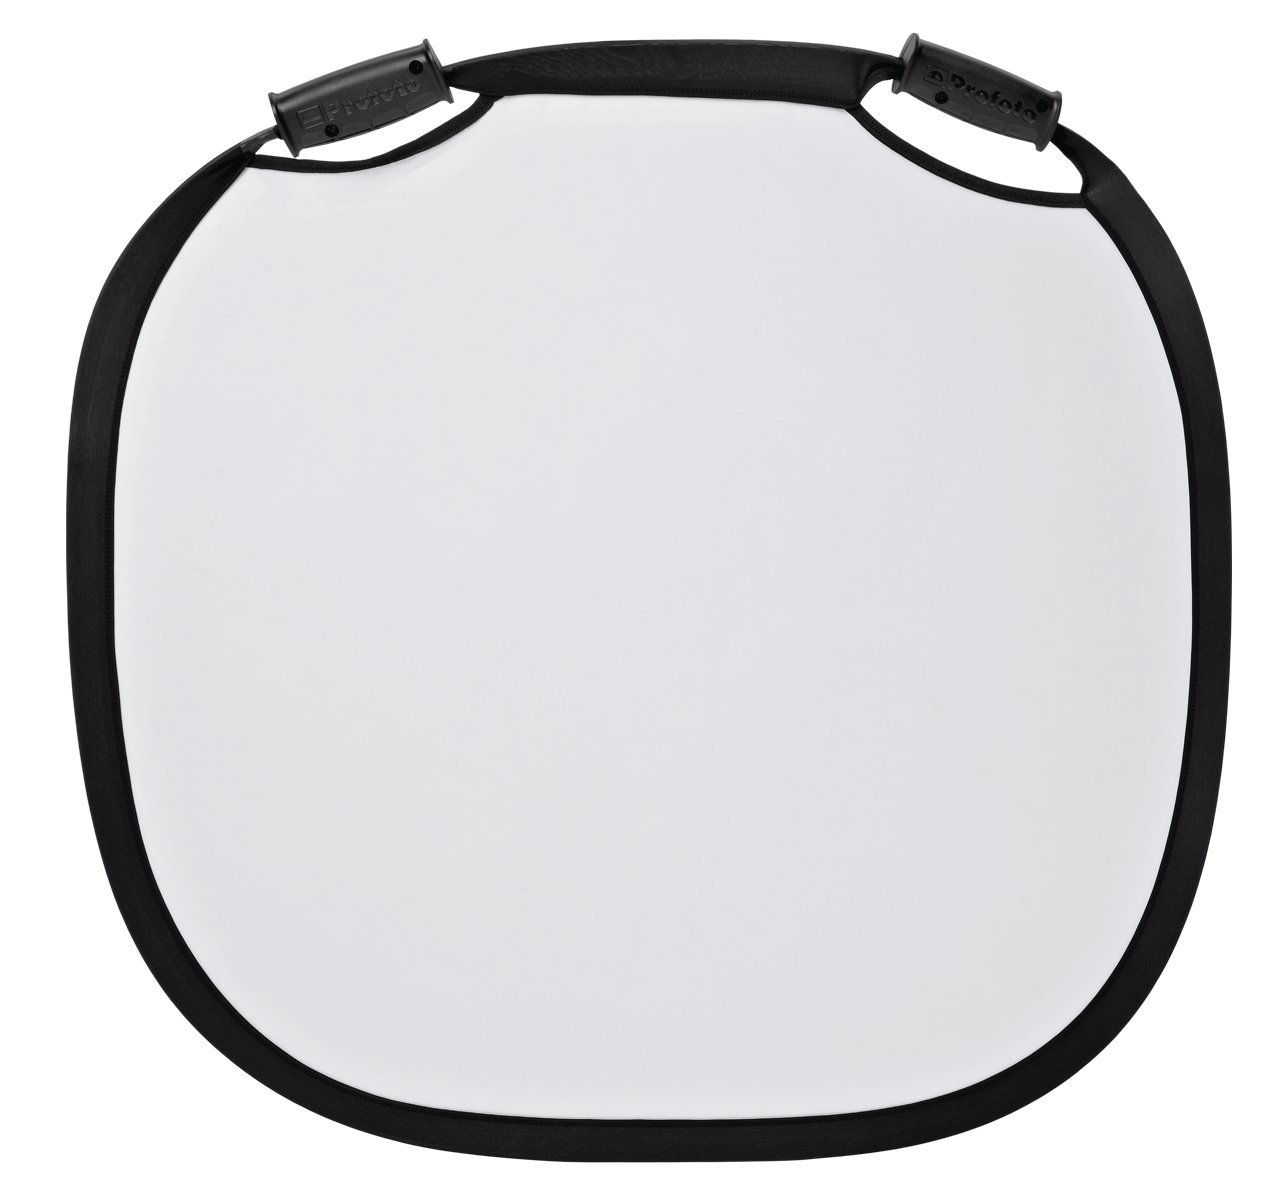 Profoto 47 In. Collapsible Reflector (Translucent) by Profoto